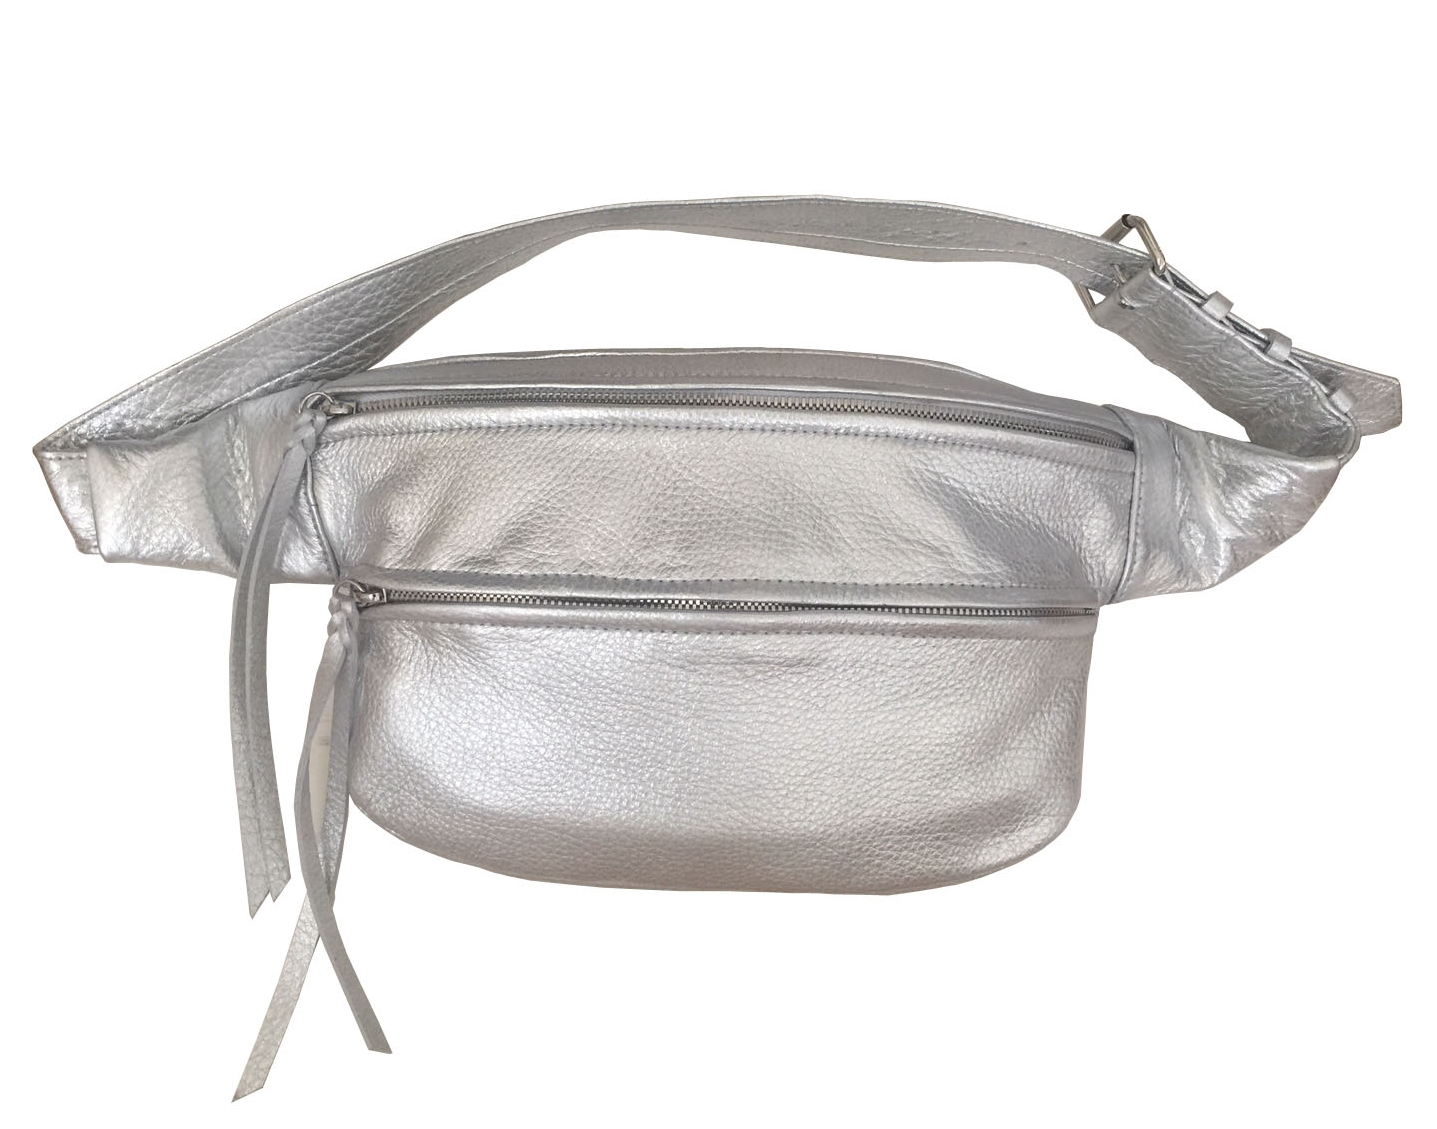 NEW!! Monkita Fanny Pack — NOT RATIONAL